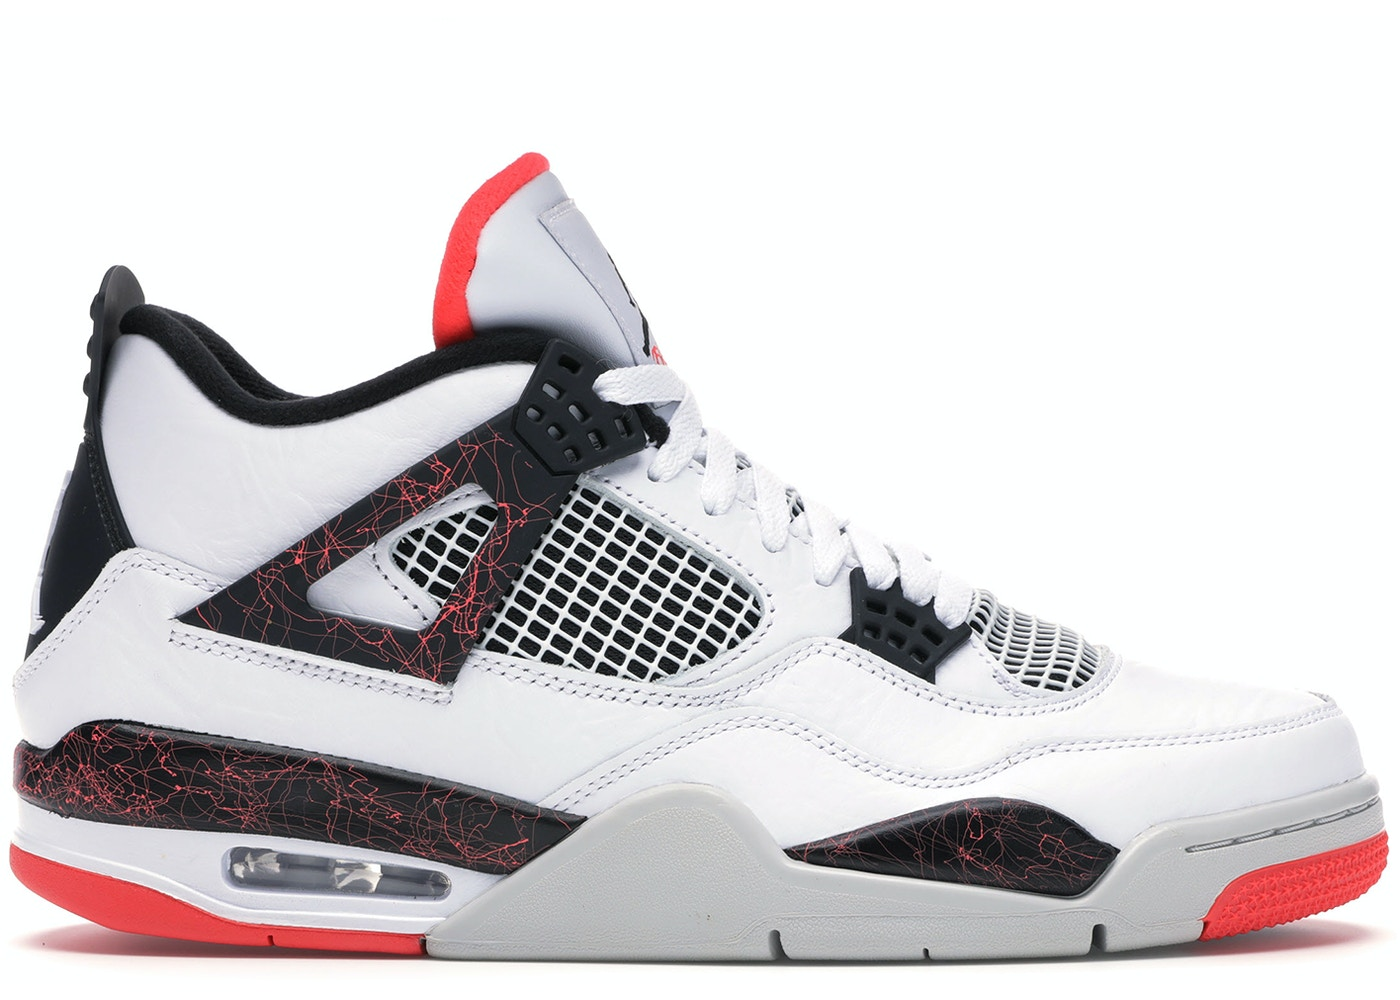 pretty nice 16c4b 1fe43 Jordan 4 Retro Flight Nostalgia